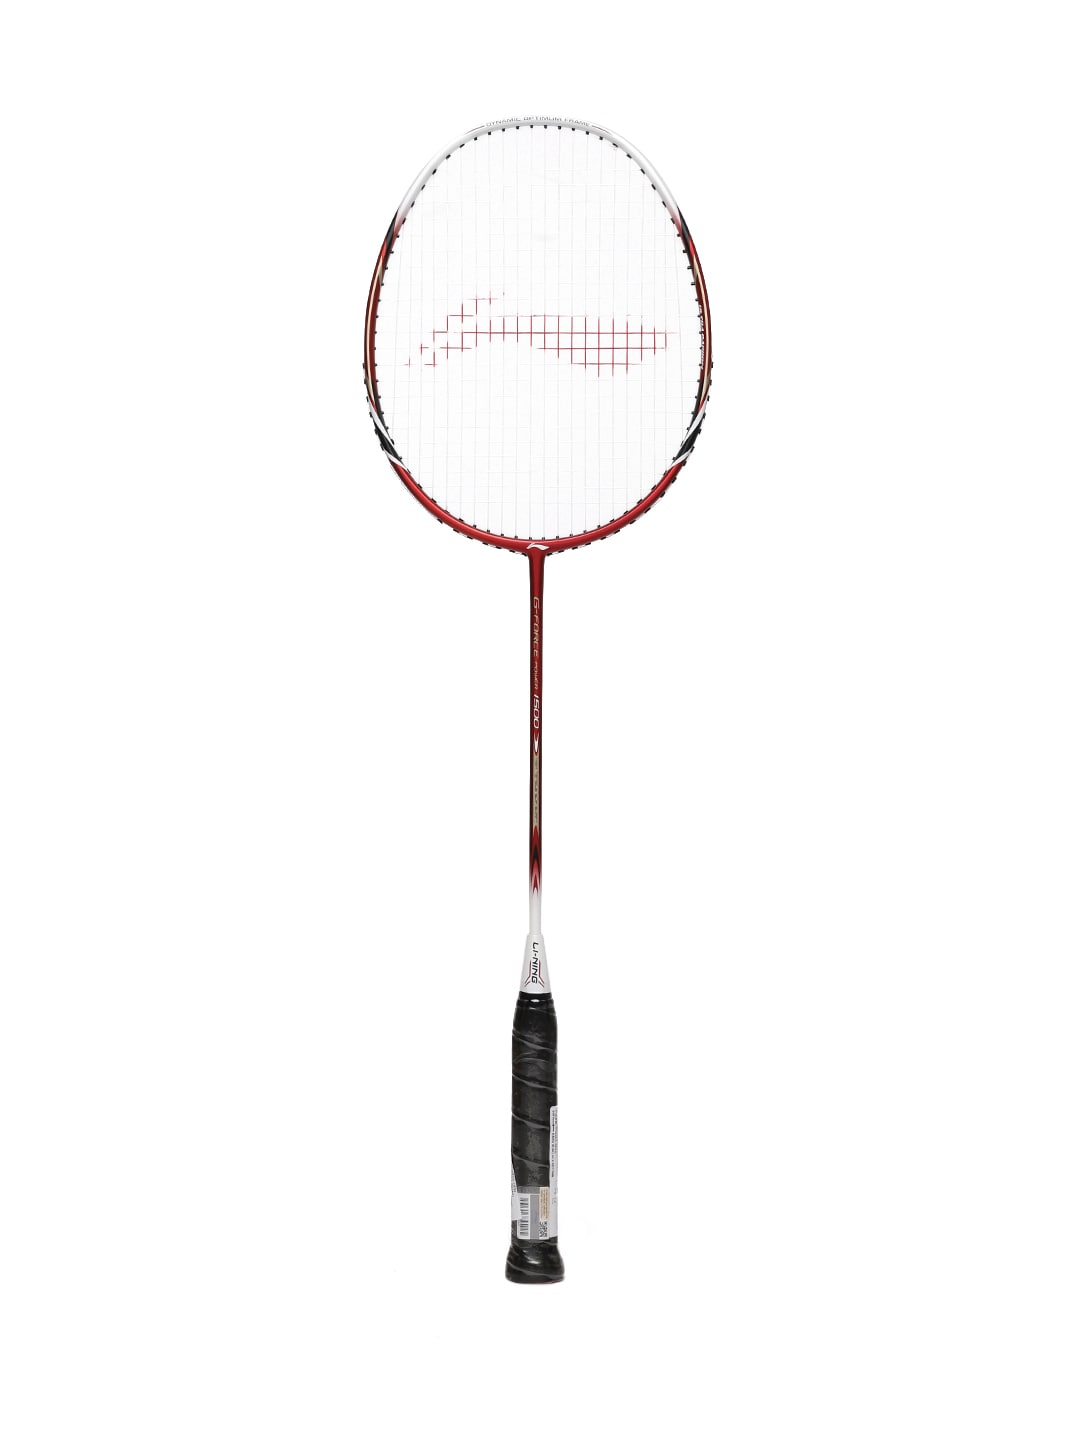 Badminton Badminton Racquets - Buy Badminton Badminton Racquets online in India